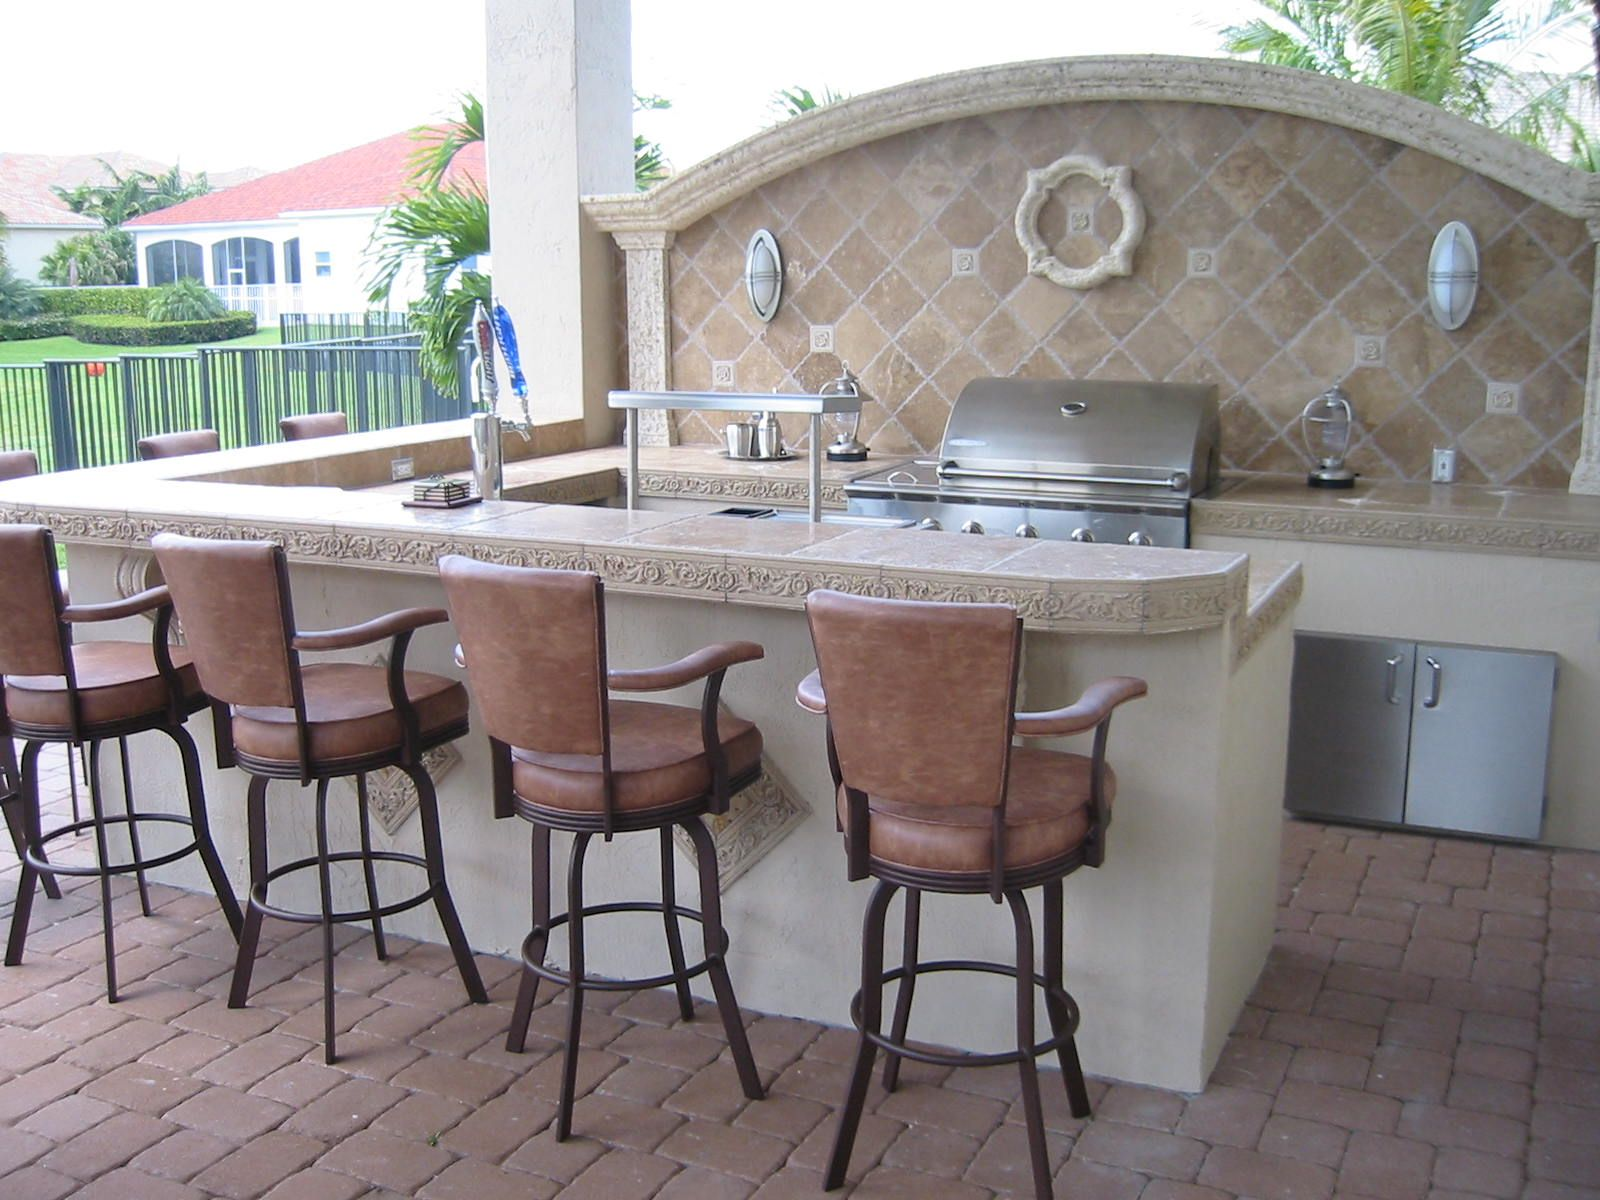 How to build an outdoor kitchen part two outdoor bbq kitchen bbq